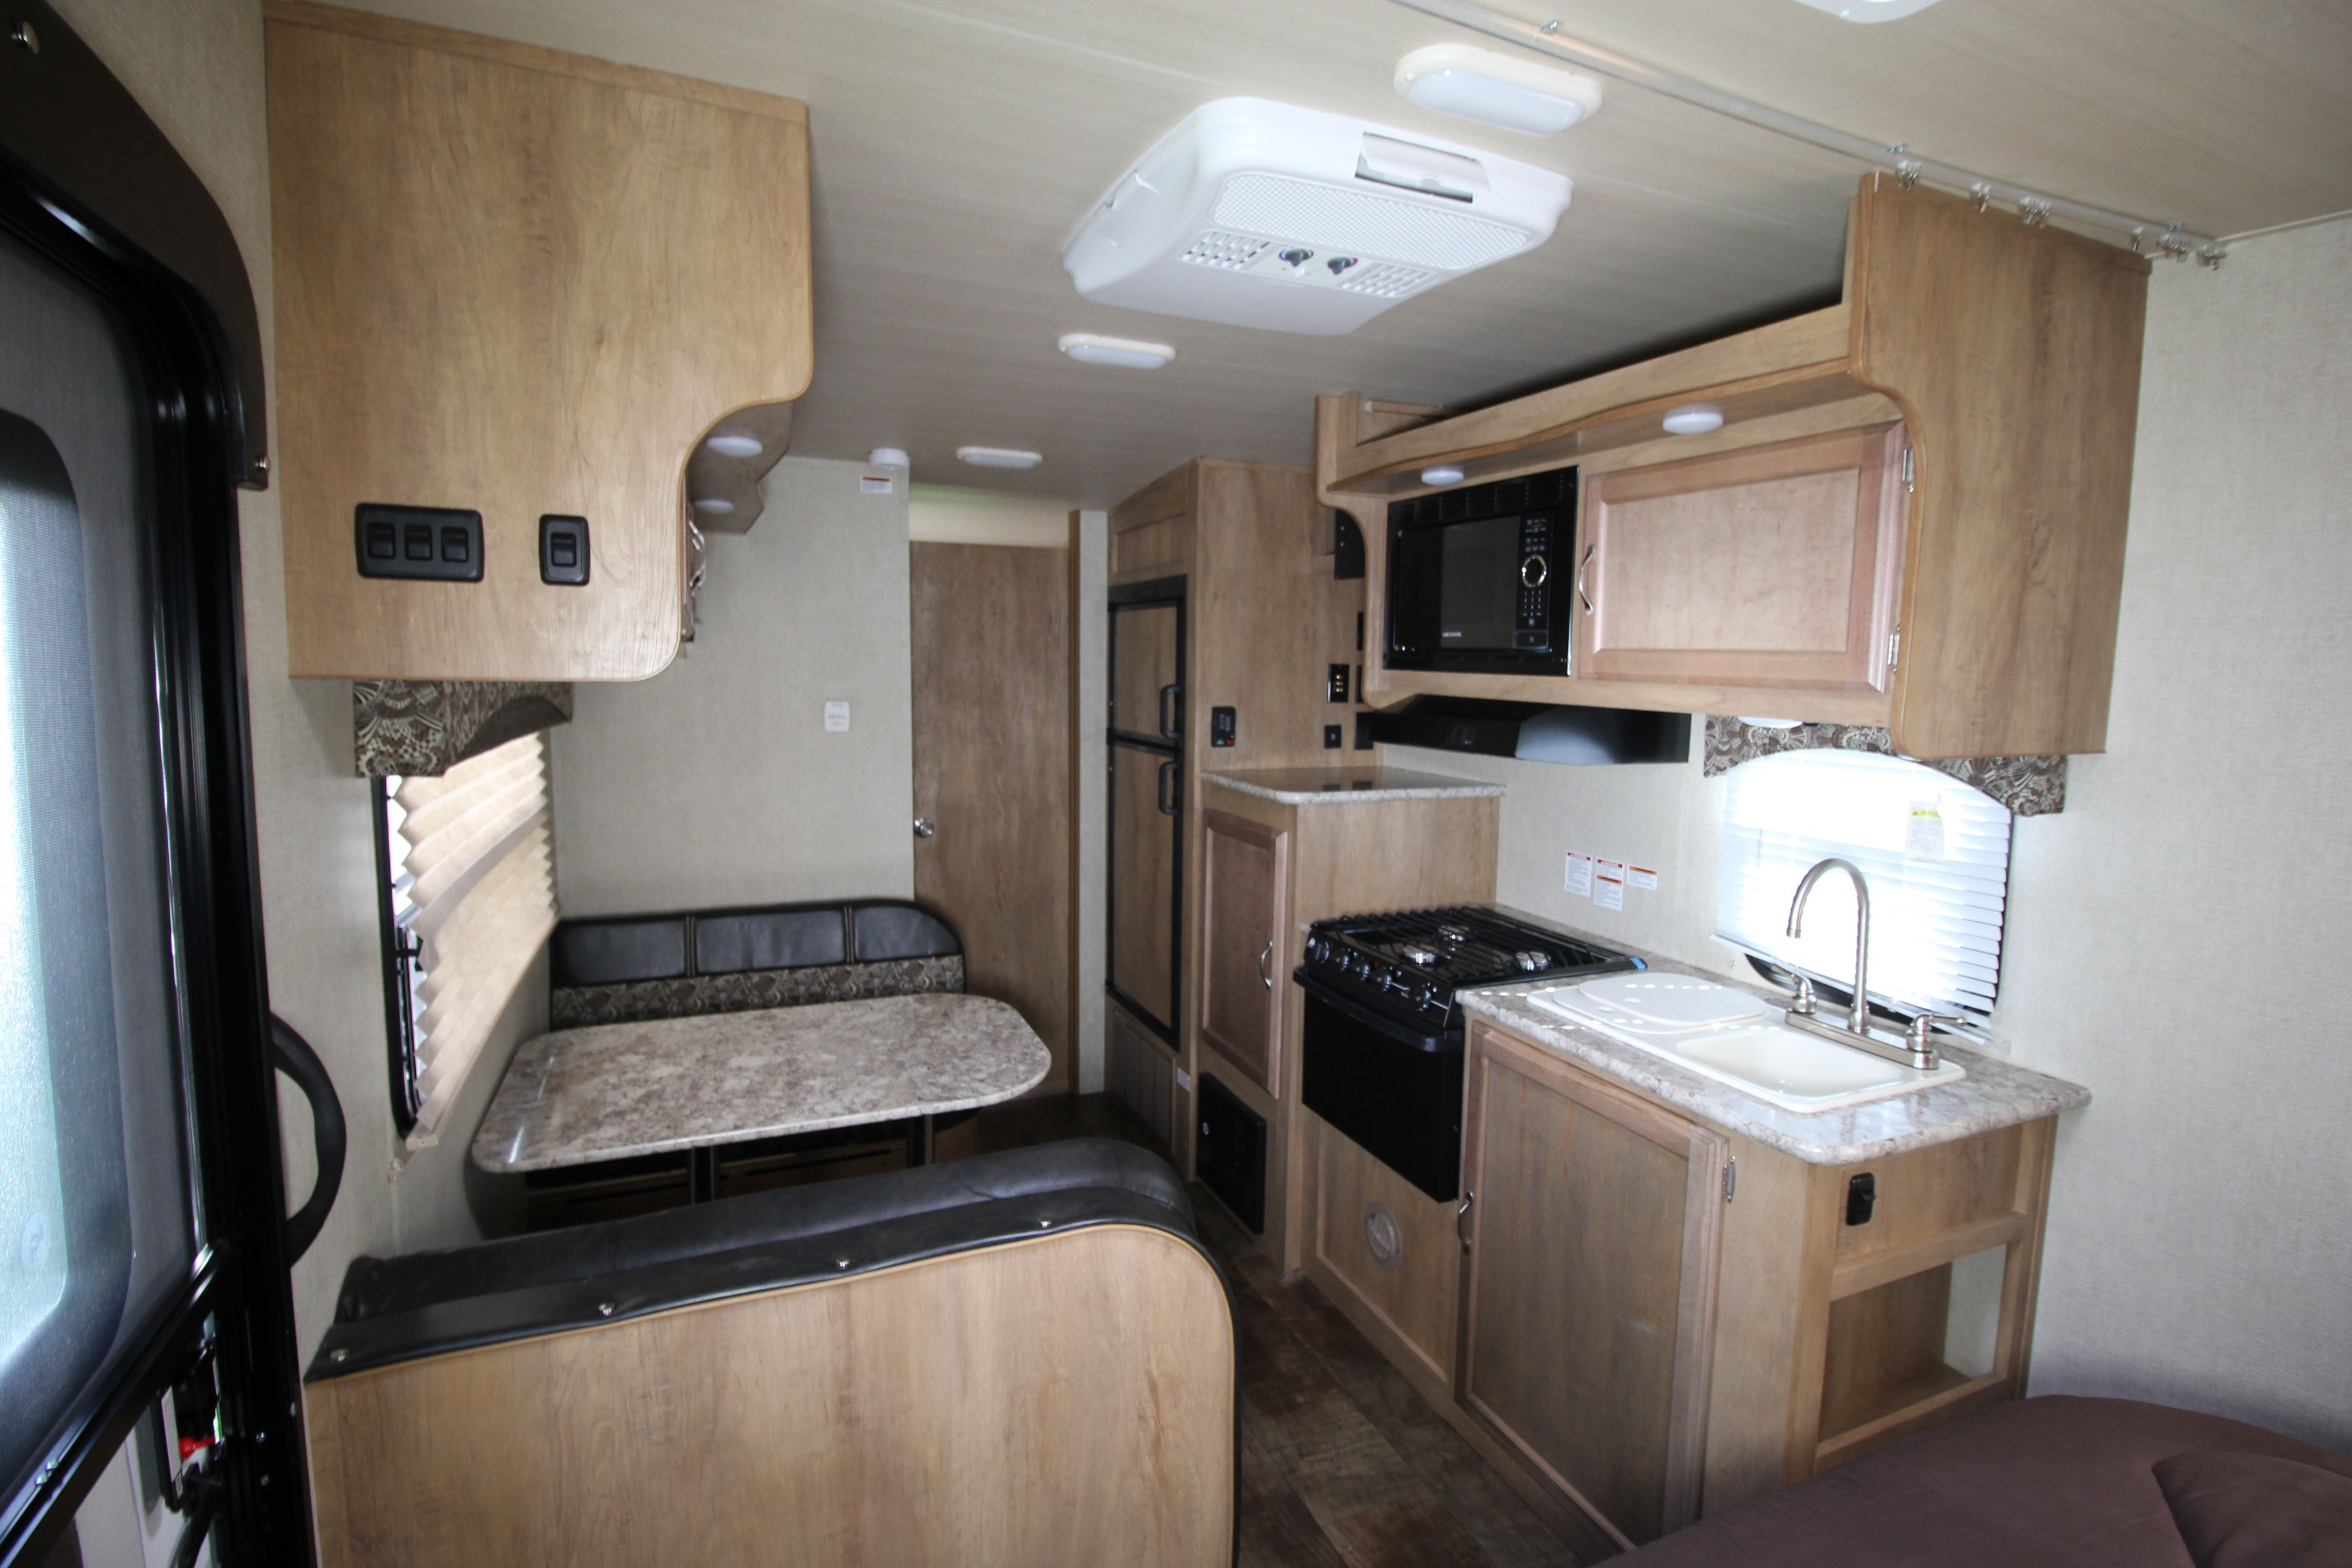 New 2019 Gulfstream Vista Cruiser 19rbs Travel Trailer